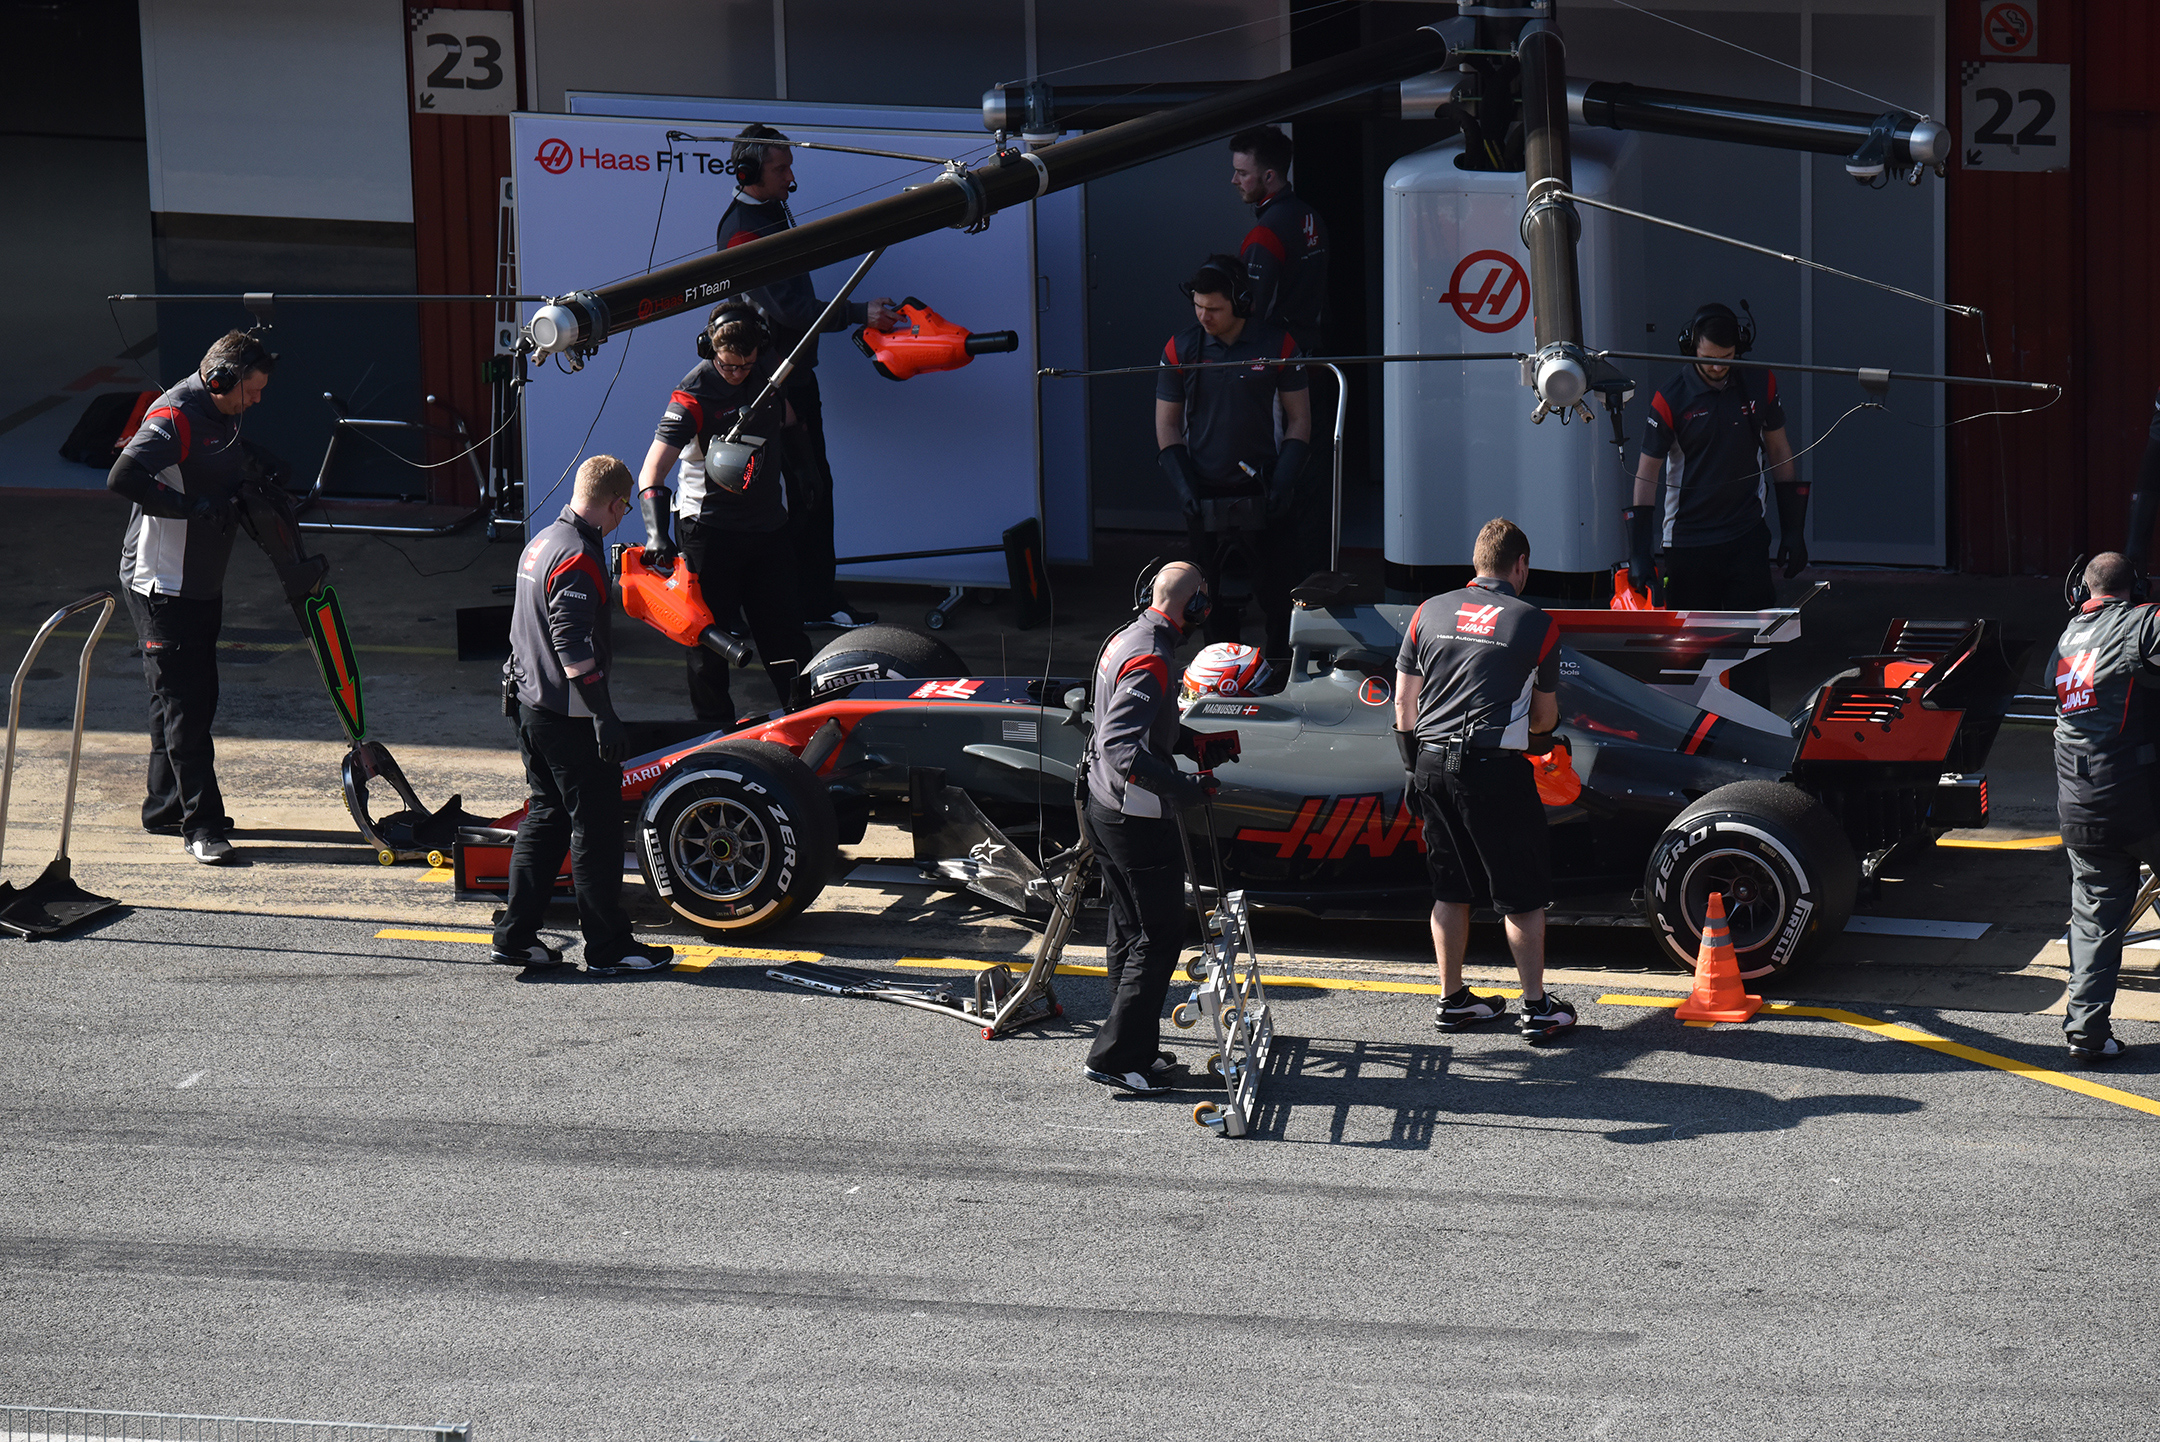 F1 Testday pitstop - 2017 - Haas F1 Team VF-17 - photo by Jacques Denis - Team DESIGNMOTEUR